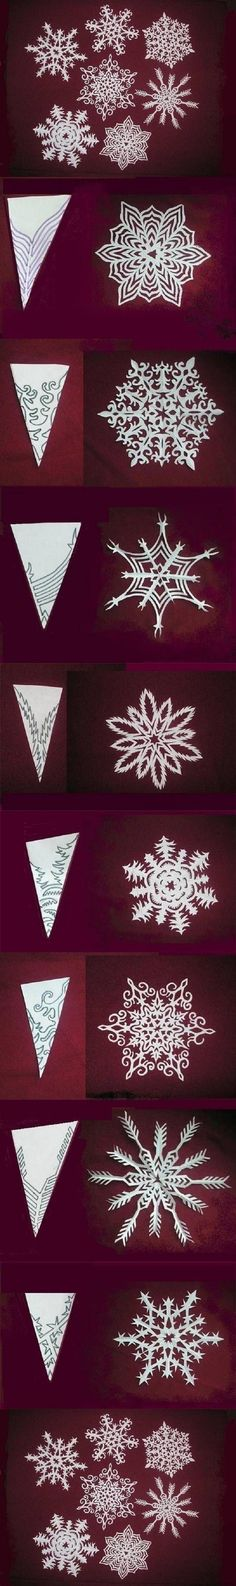 Wonderful DIY Paper Snowflakes With Pattern - A Winter-Inspired Paper Craft to Welcome the Holiday Season